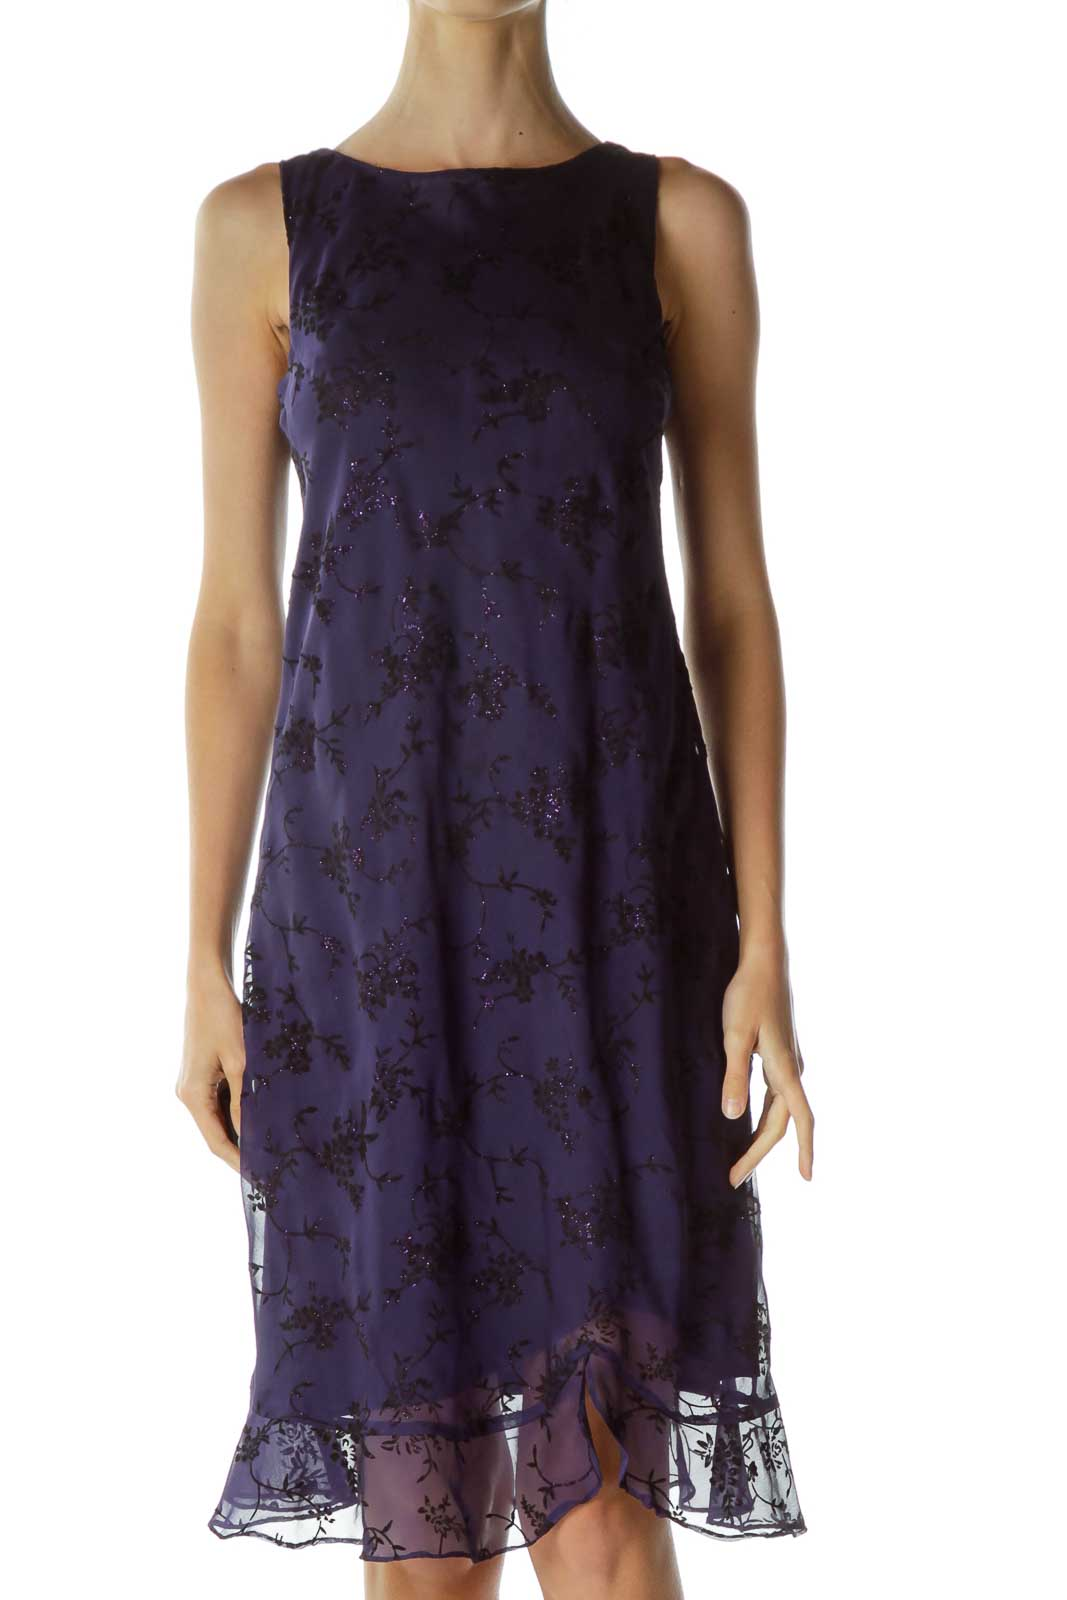 Purple Flower Print Vintage Shift Dress Front